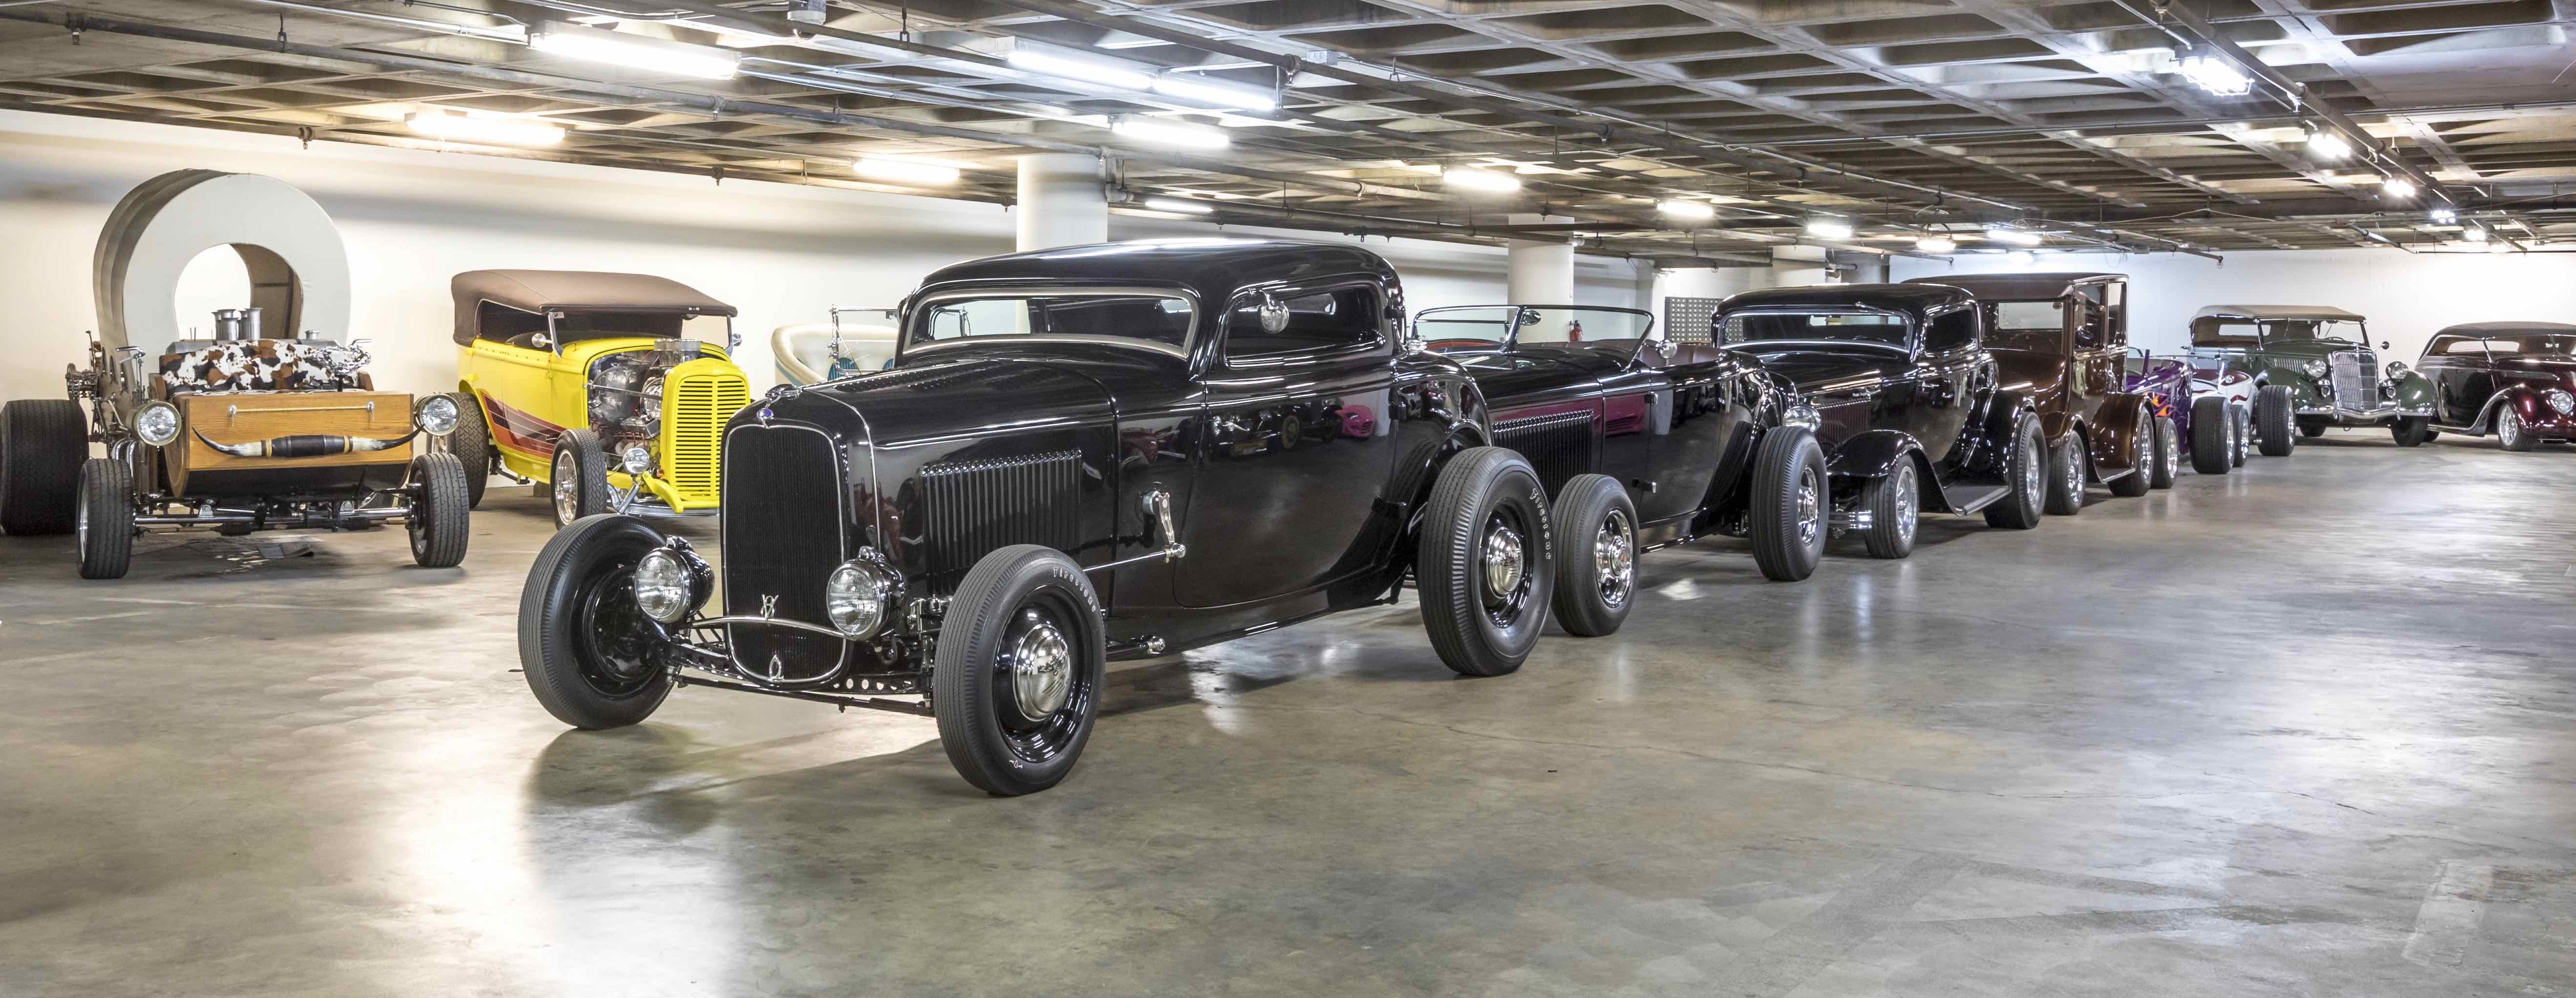 Hot rods ready to roll in and out of the Petersen